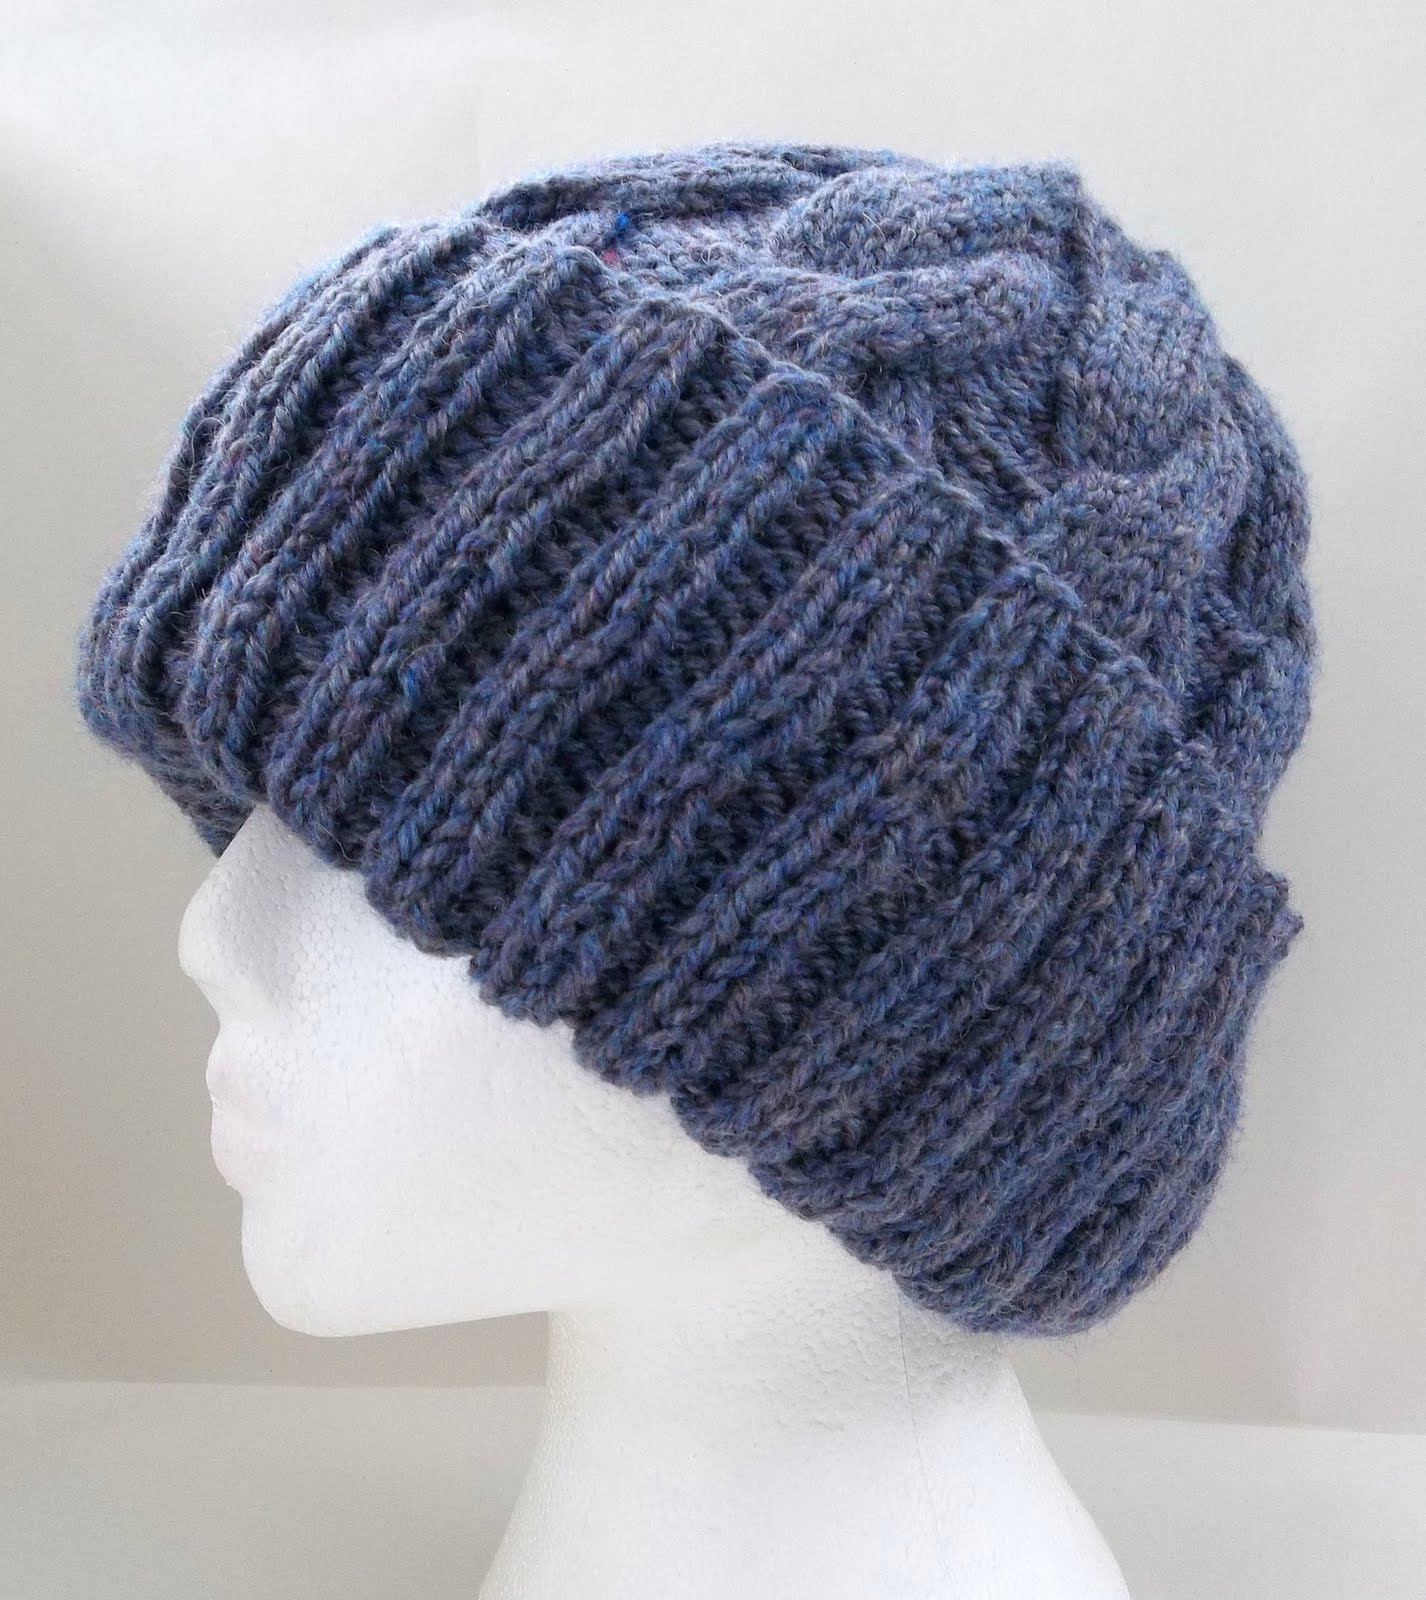 Knitting Pattern Aran Cable Hat : HAND KNITTING PATTERNS. ARAN. COWLS, HATS, SCARVES AND NECK WARMERS